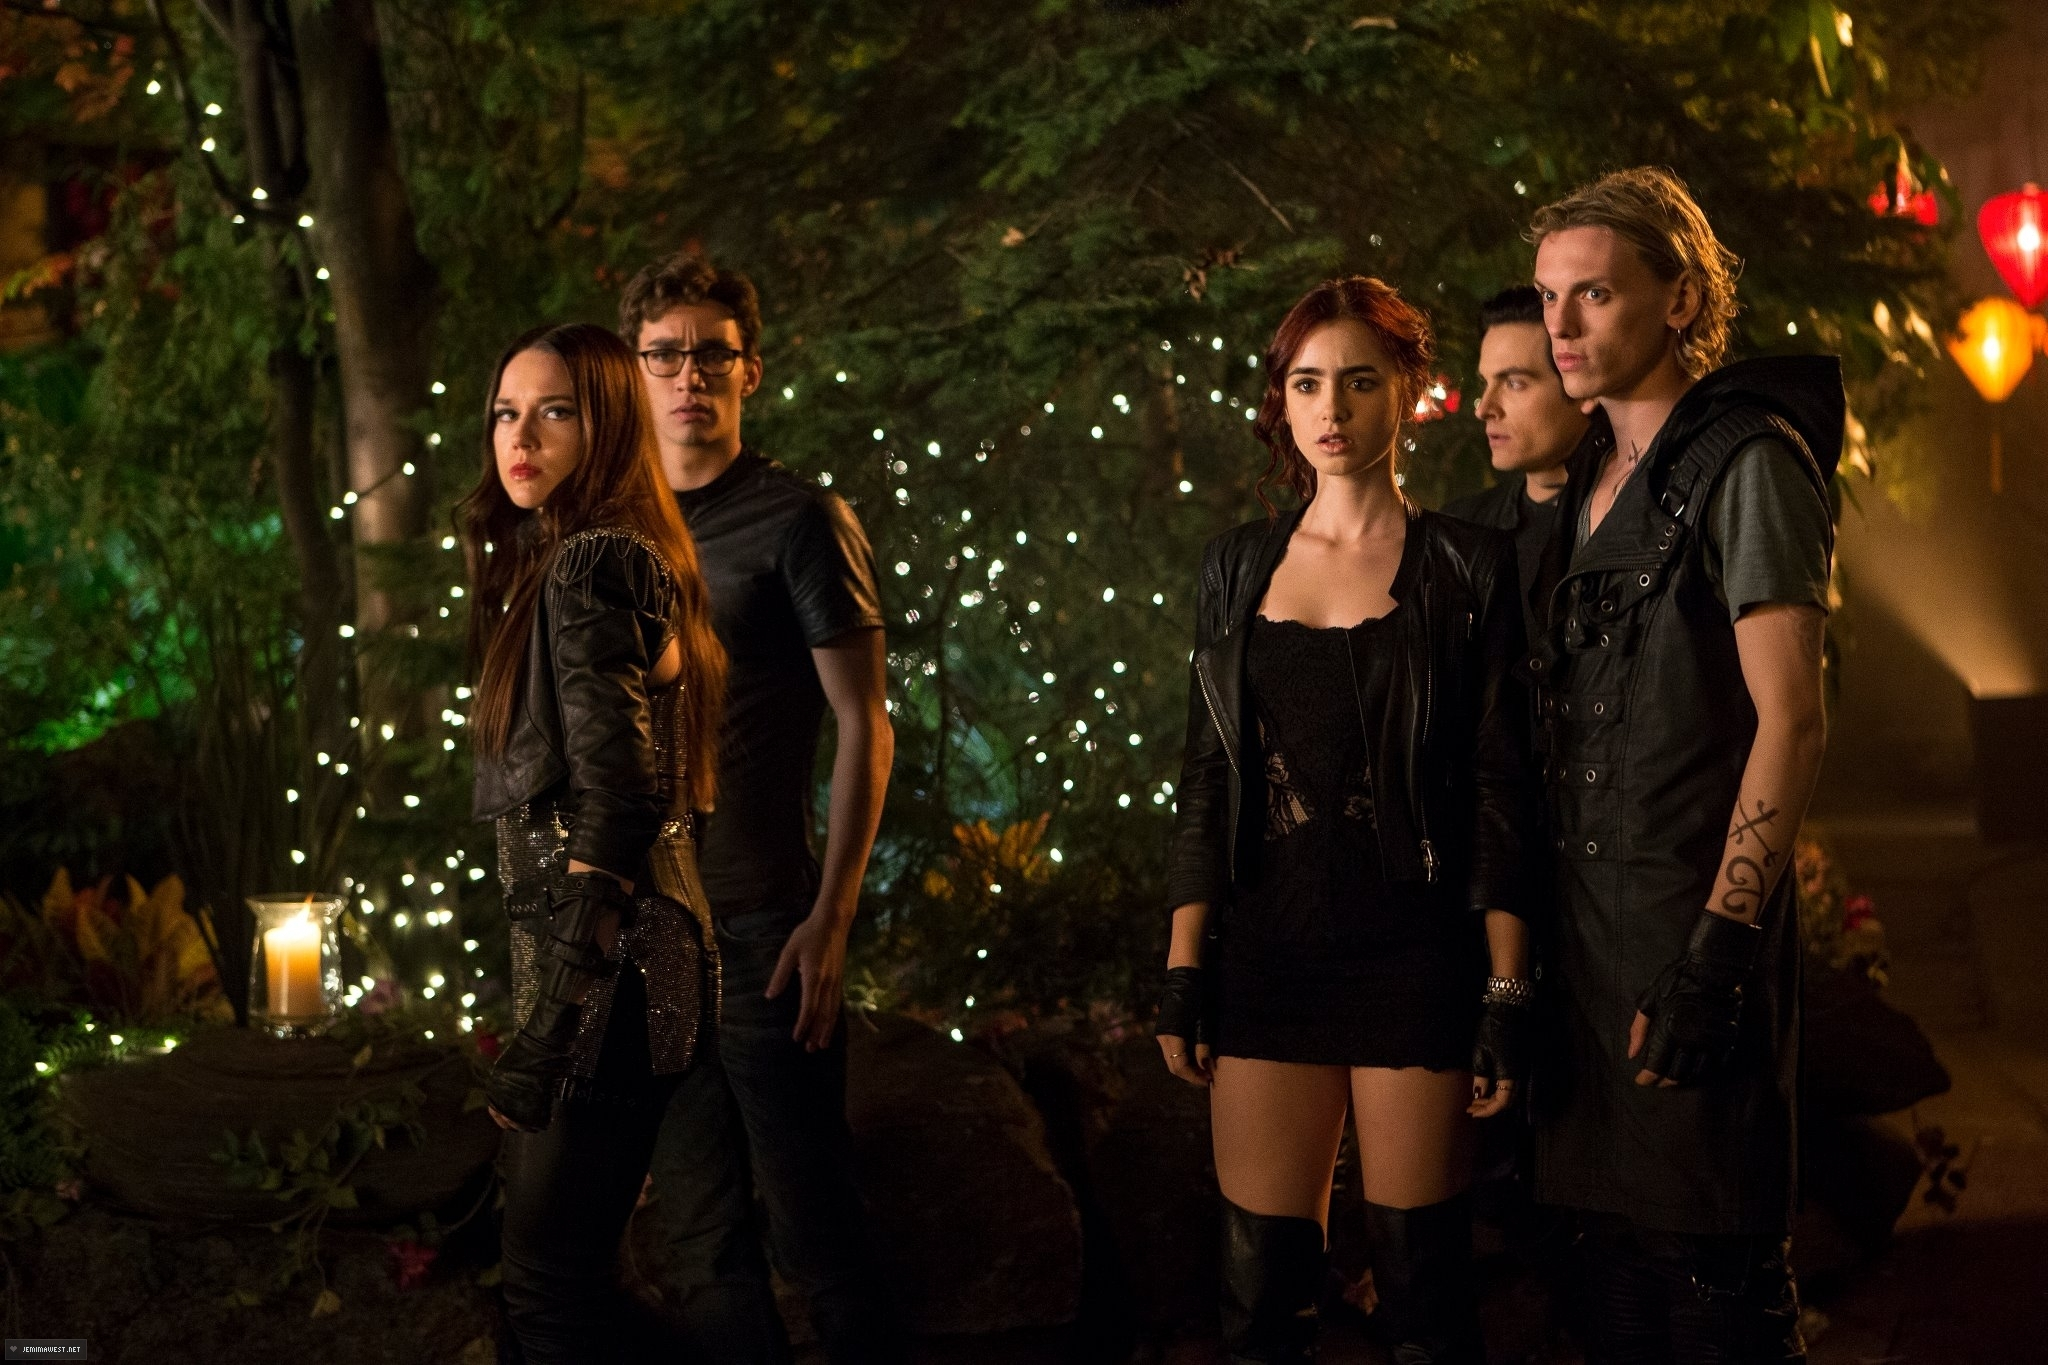 Review: The Mortal Instruments, or Not Another YA Movie!